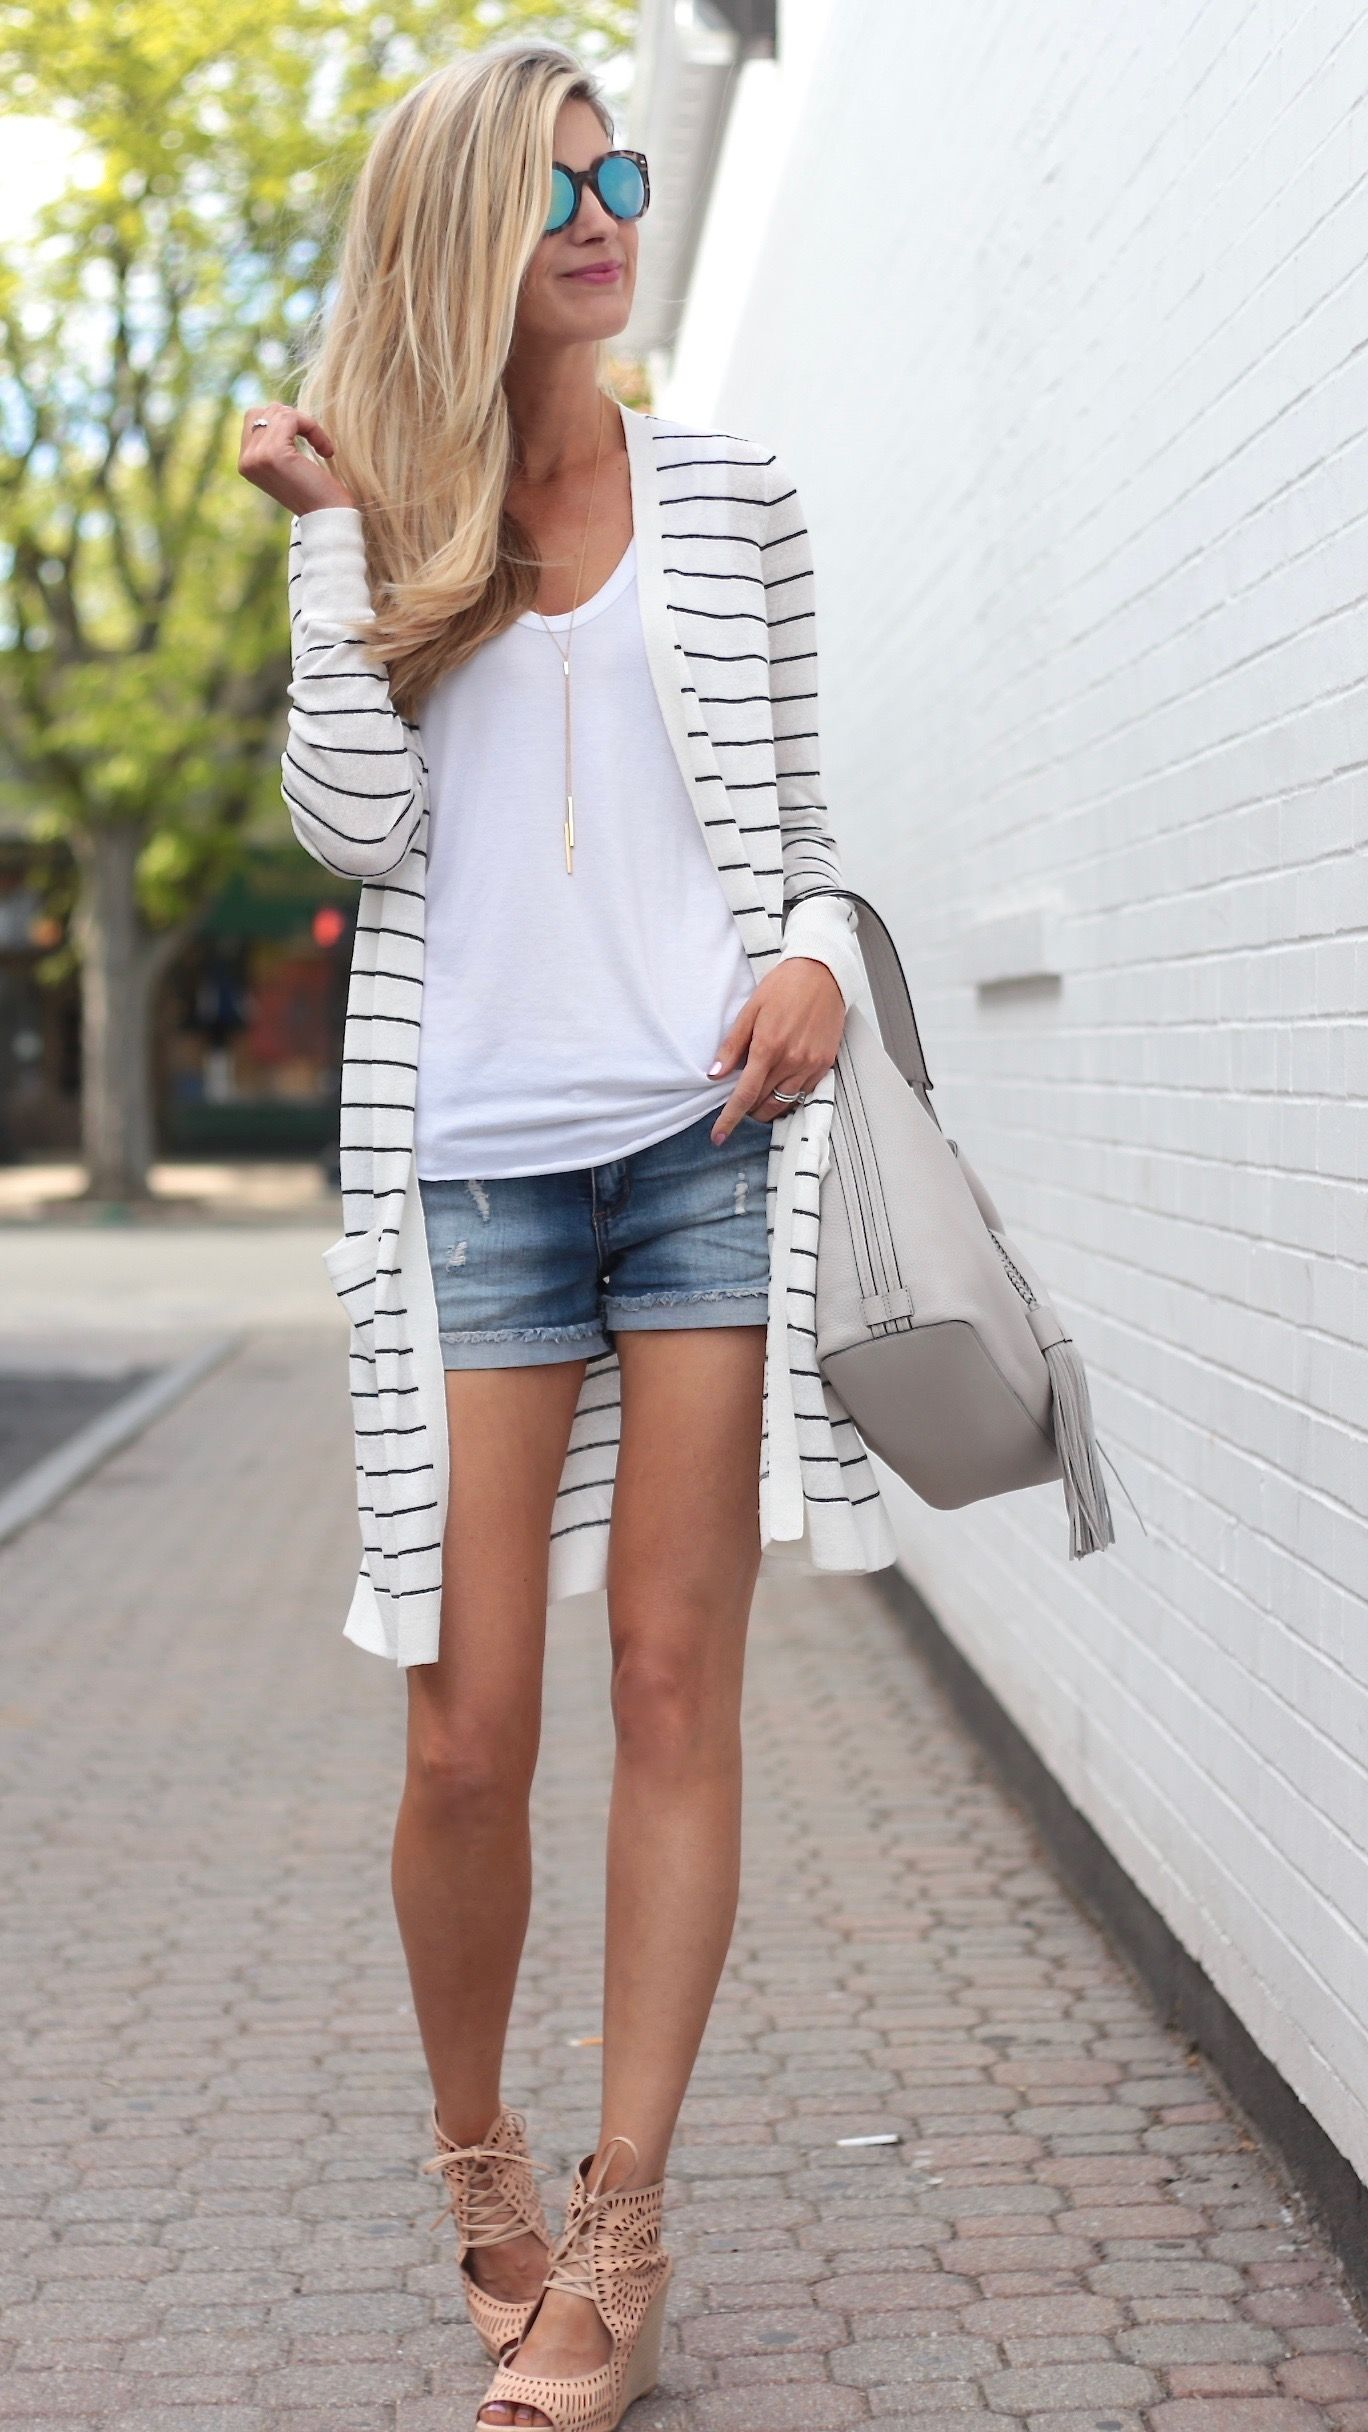 Summer Outfit Ideas with a Long Striped Cardigan Styled 3 Ways ...